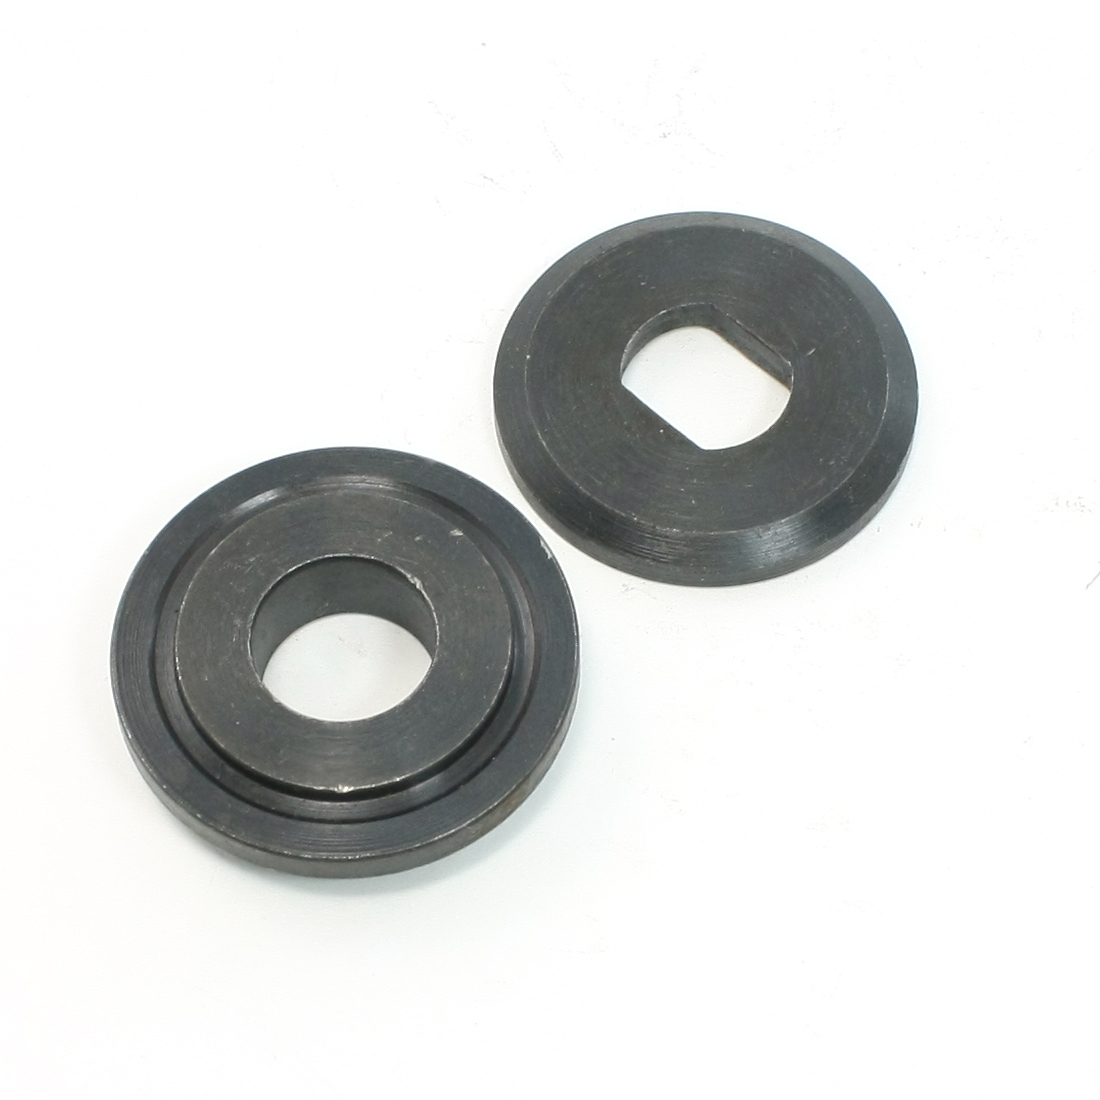 2 Pcs Replacement 40mm Dia Inner Outer Flange for Cut Off Machine